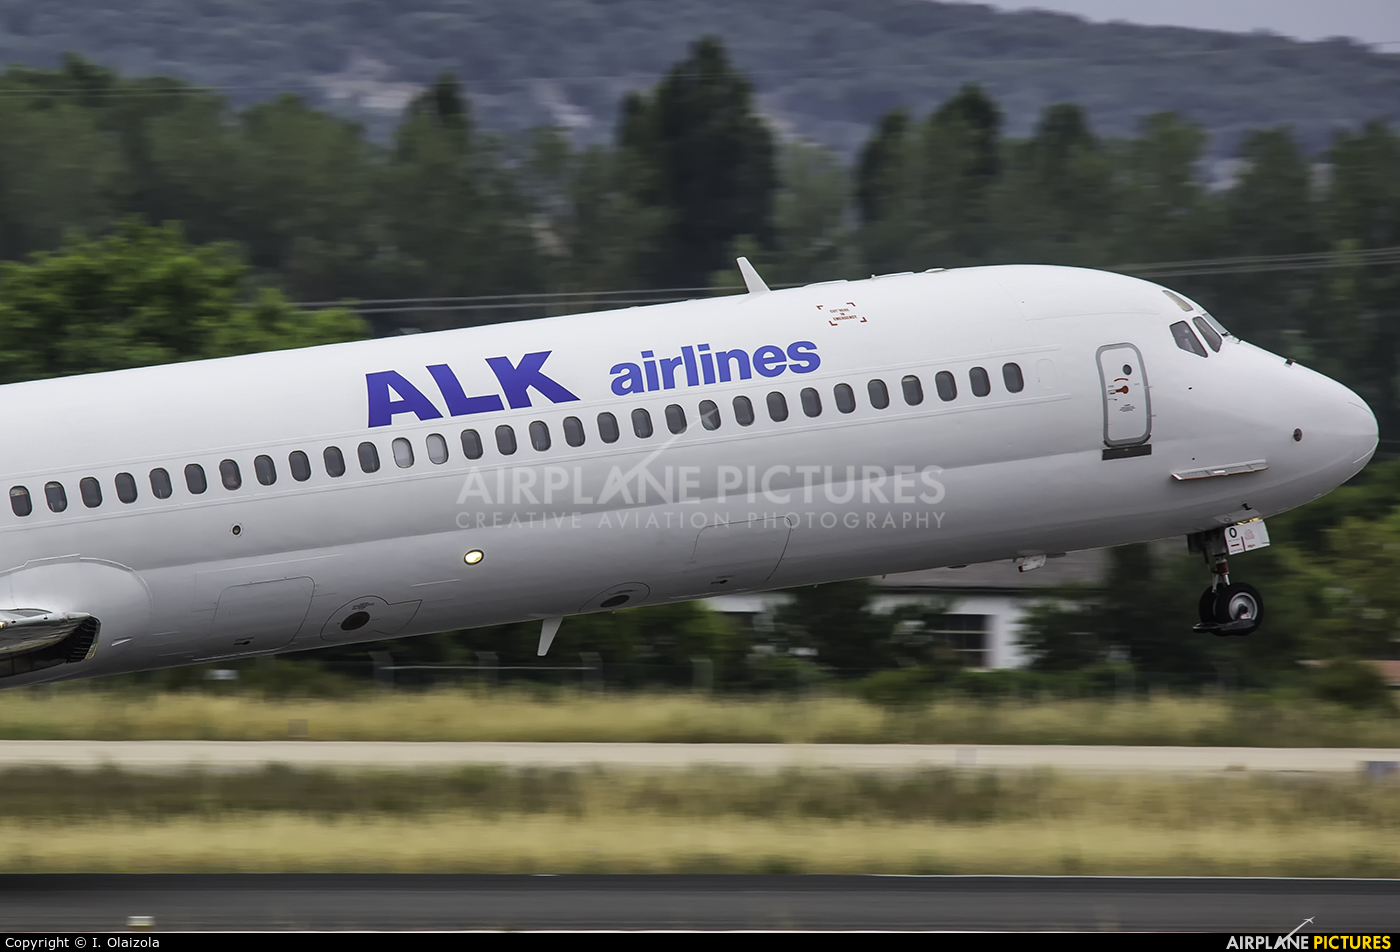 ALK Airlines LZ-DEO aircraft at Vitoria